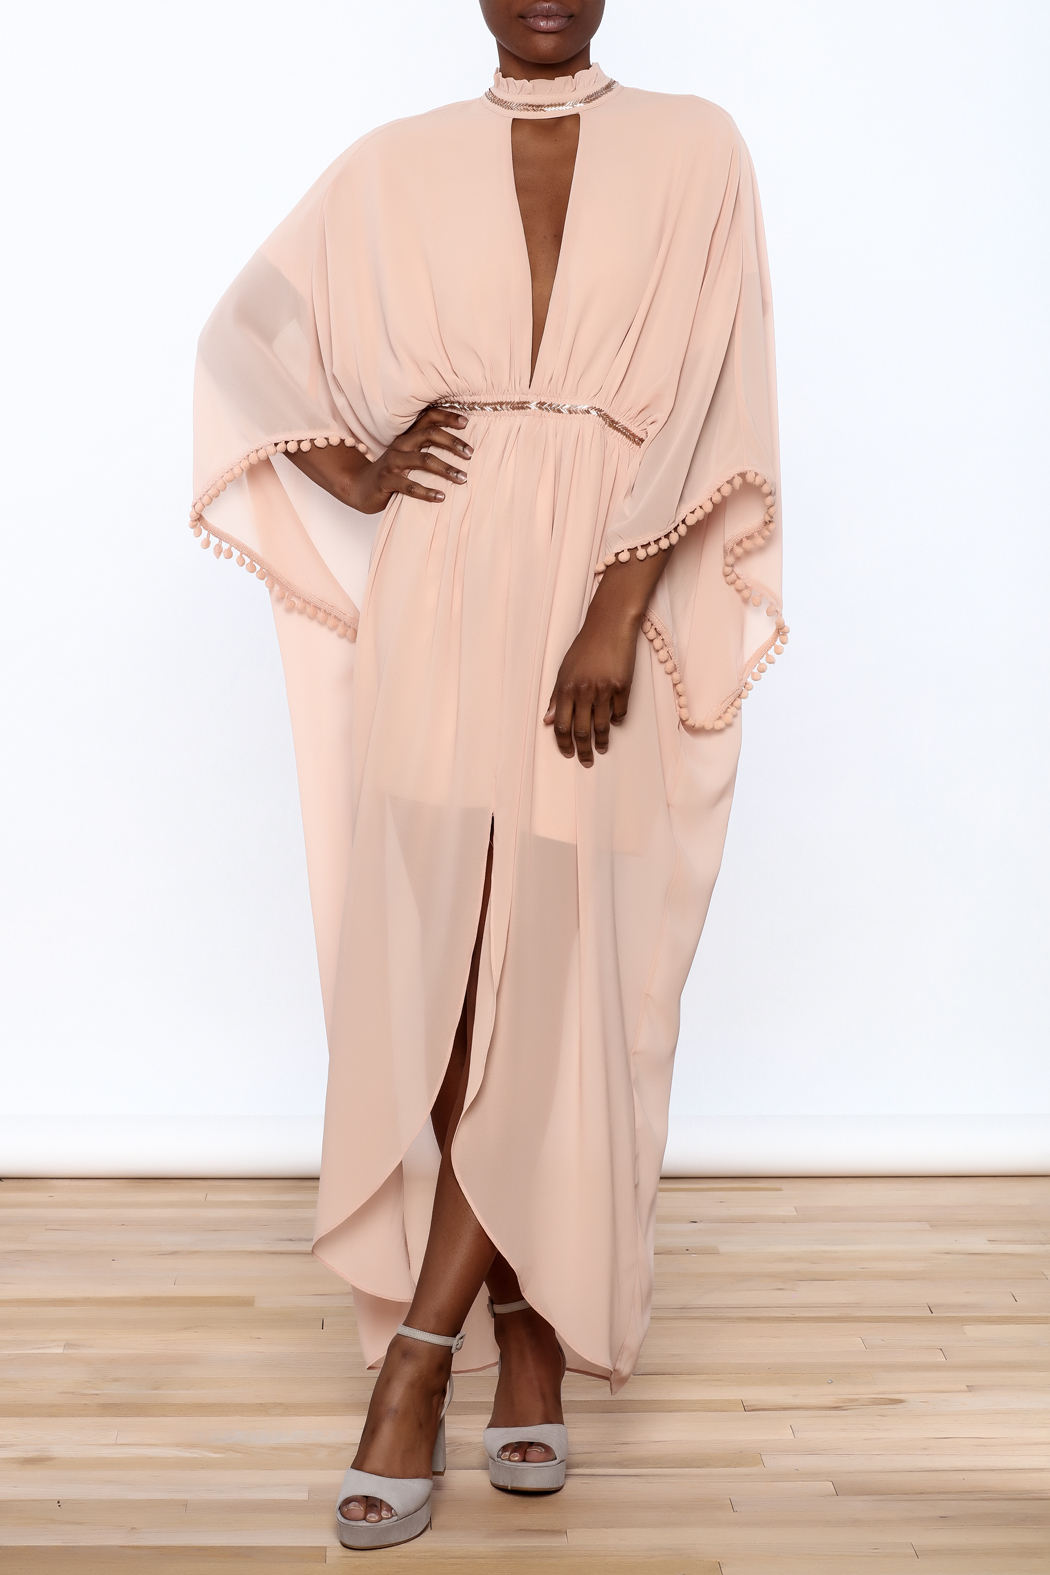 807a26978b65a The Clothing Co Pink Modern Kimono Dress from Louisiana by Bella ...